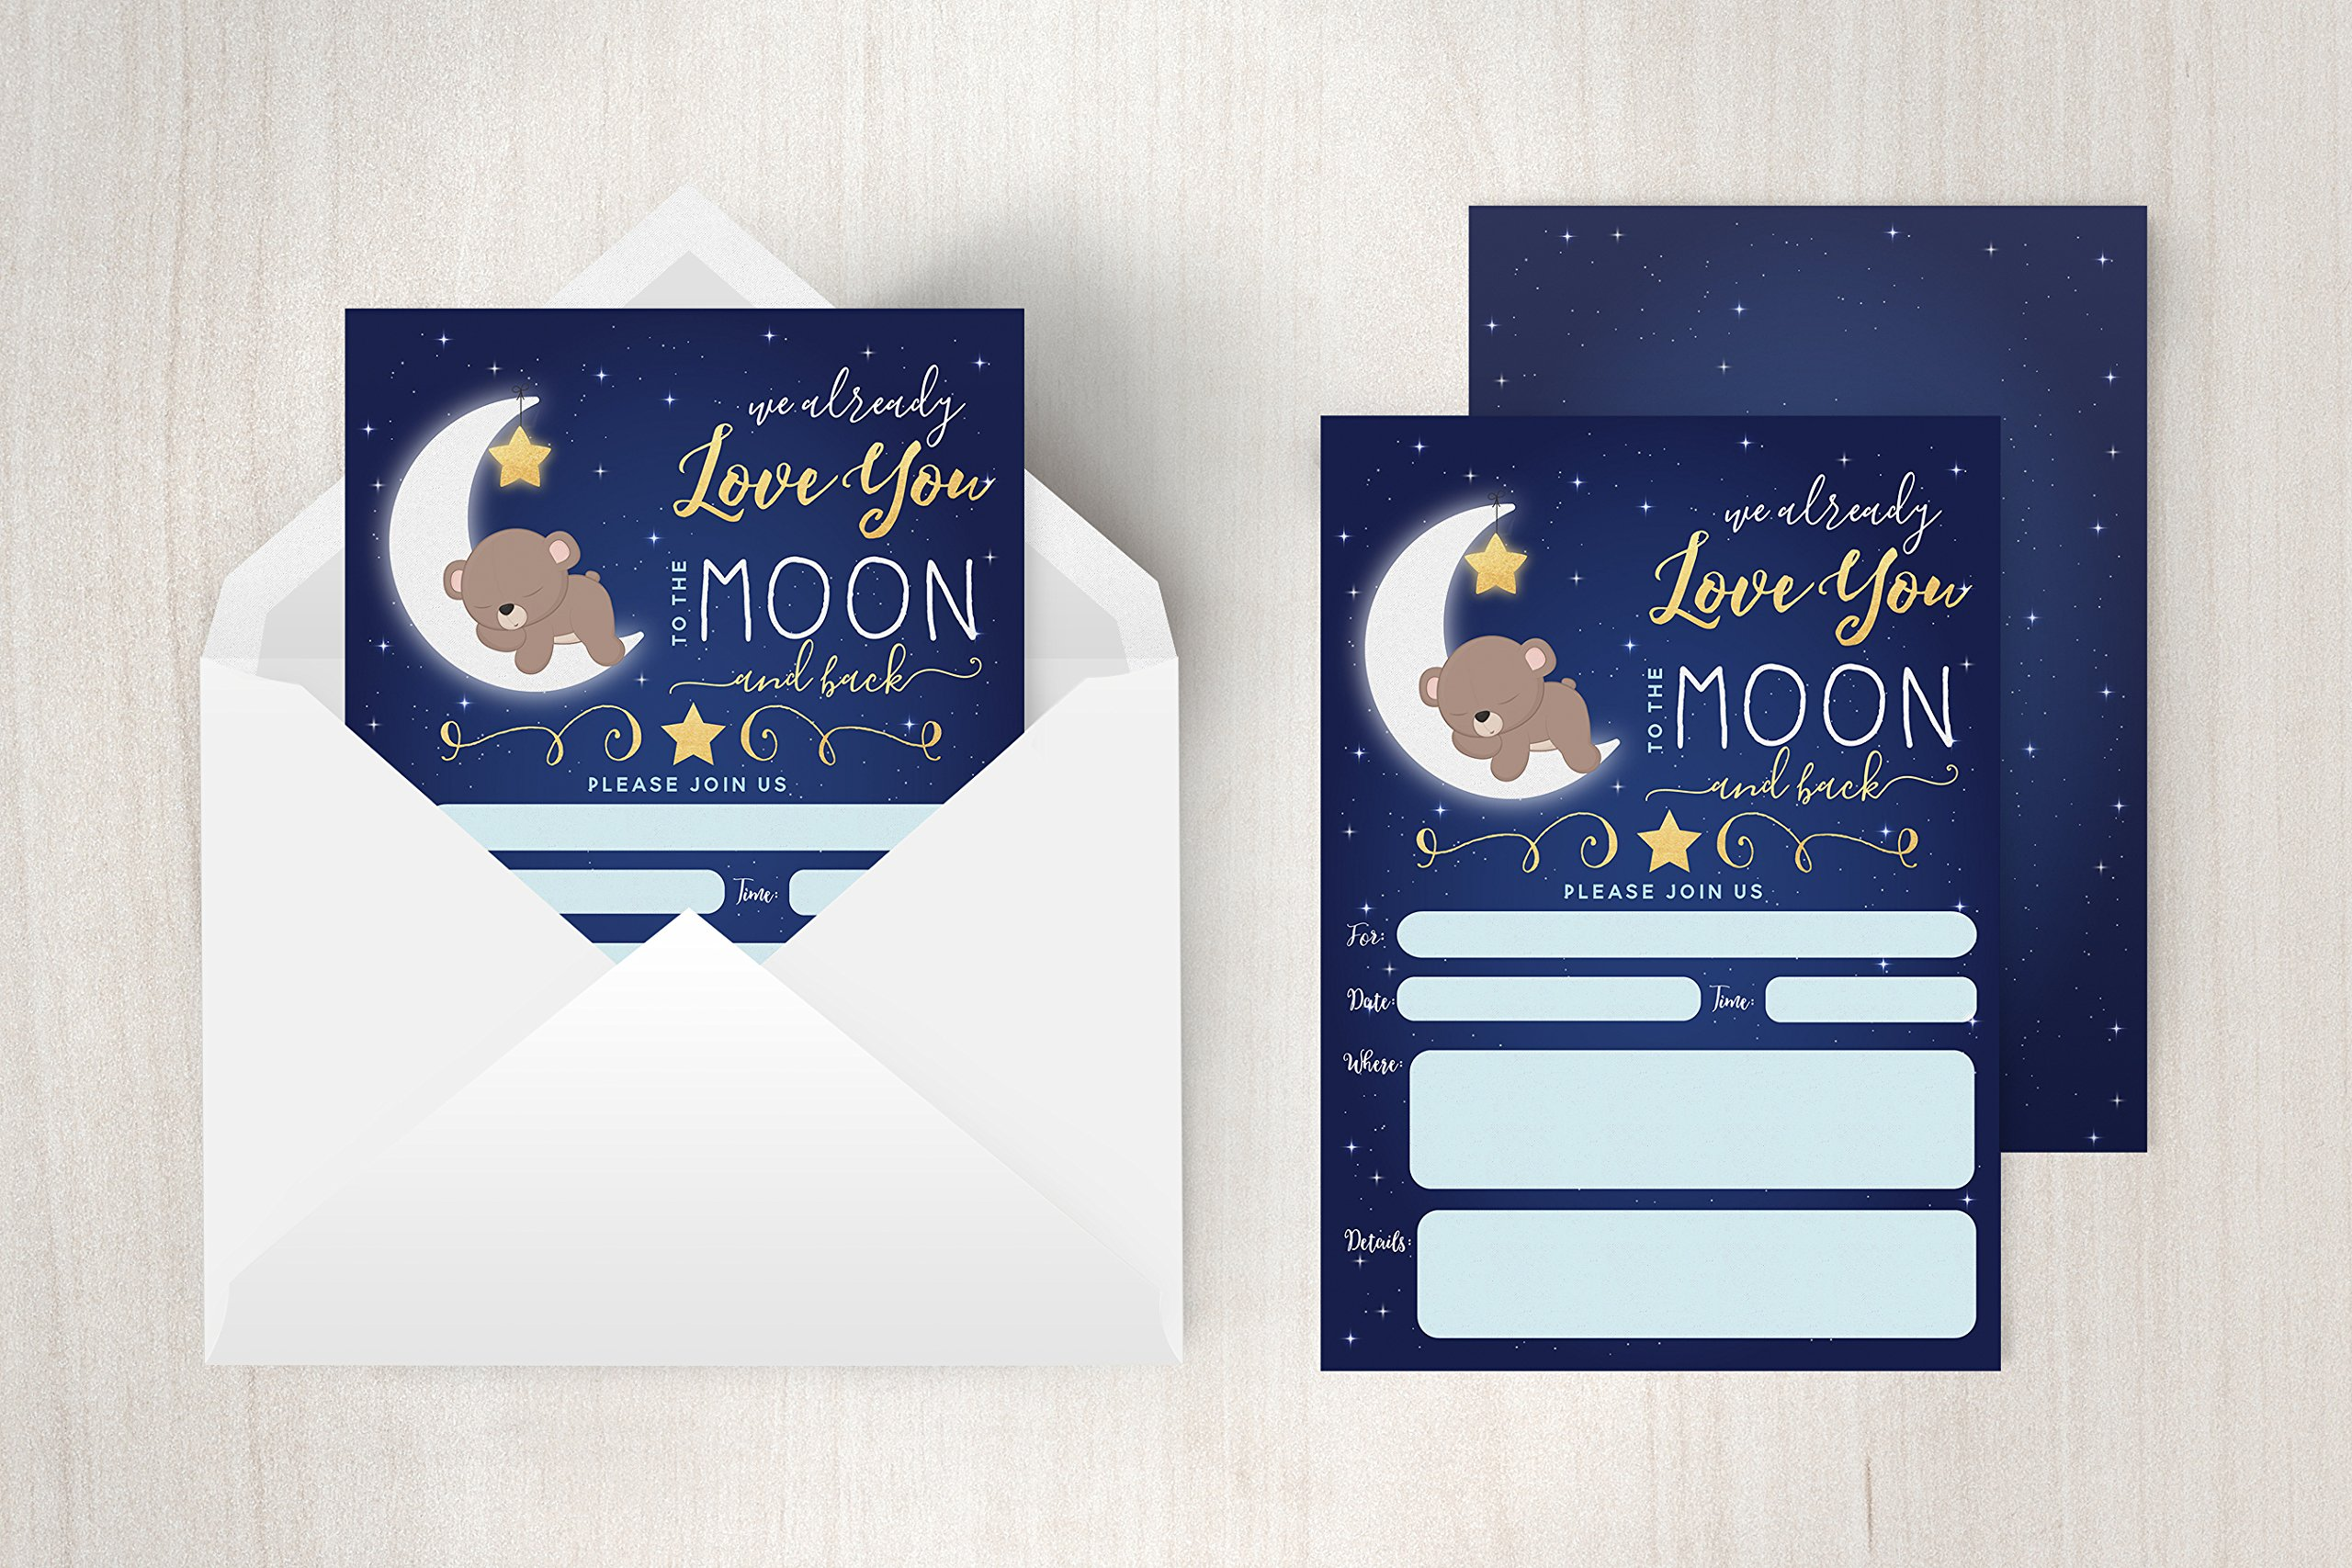 Boy Baby Shower Invitation, Love You To the Moon and back Baby Shower Invitation, Bear Baby Shower invite, Twinkle Twinkle Little Sar, 20 Fill in Invitations and Envelopes by Your Main Event Prints (Image #4)